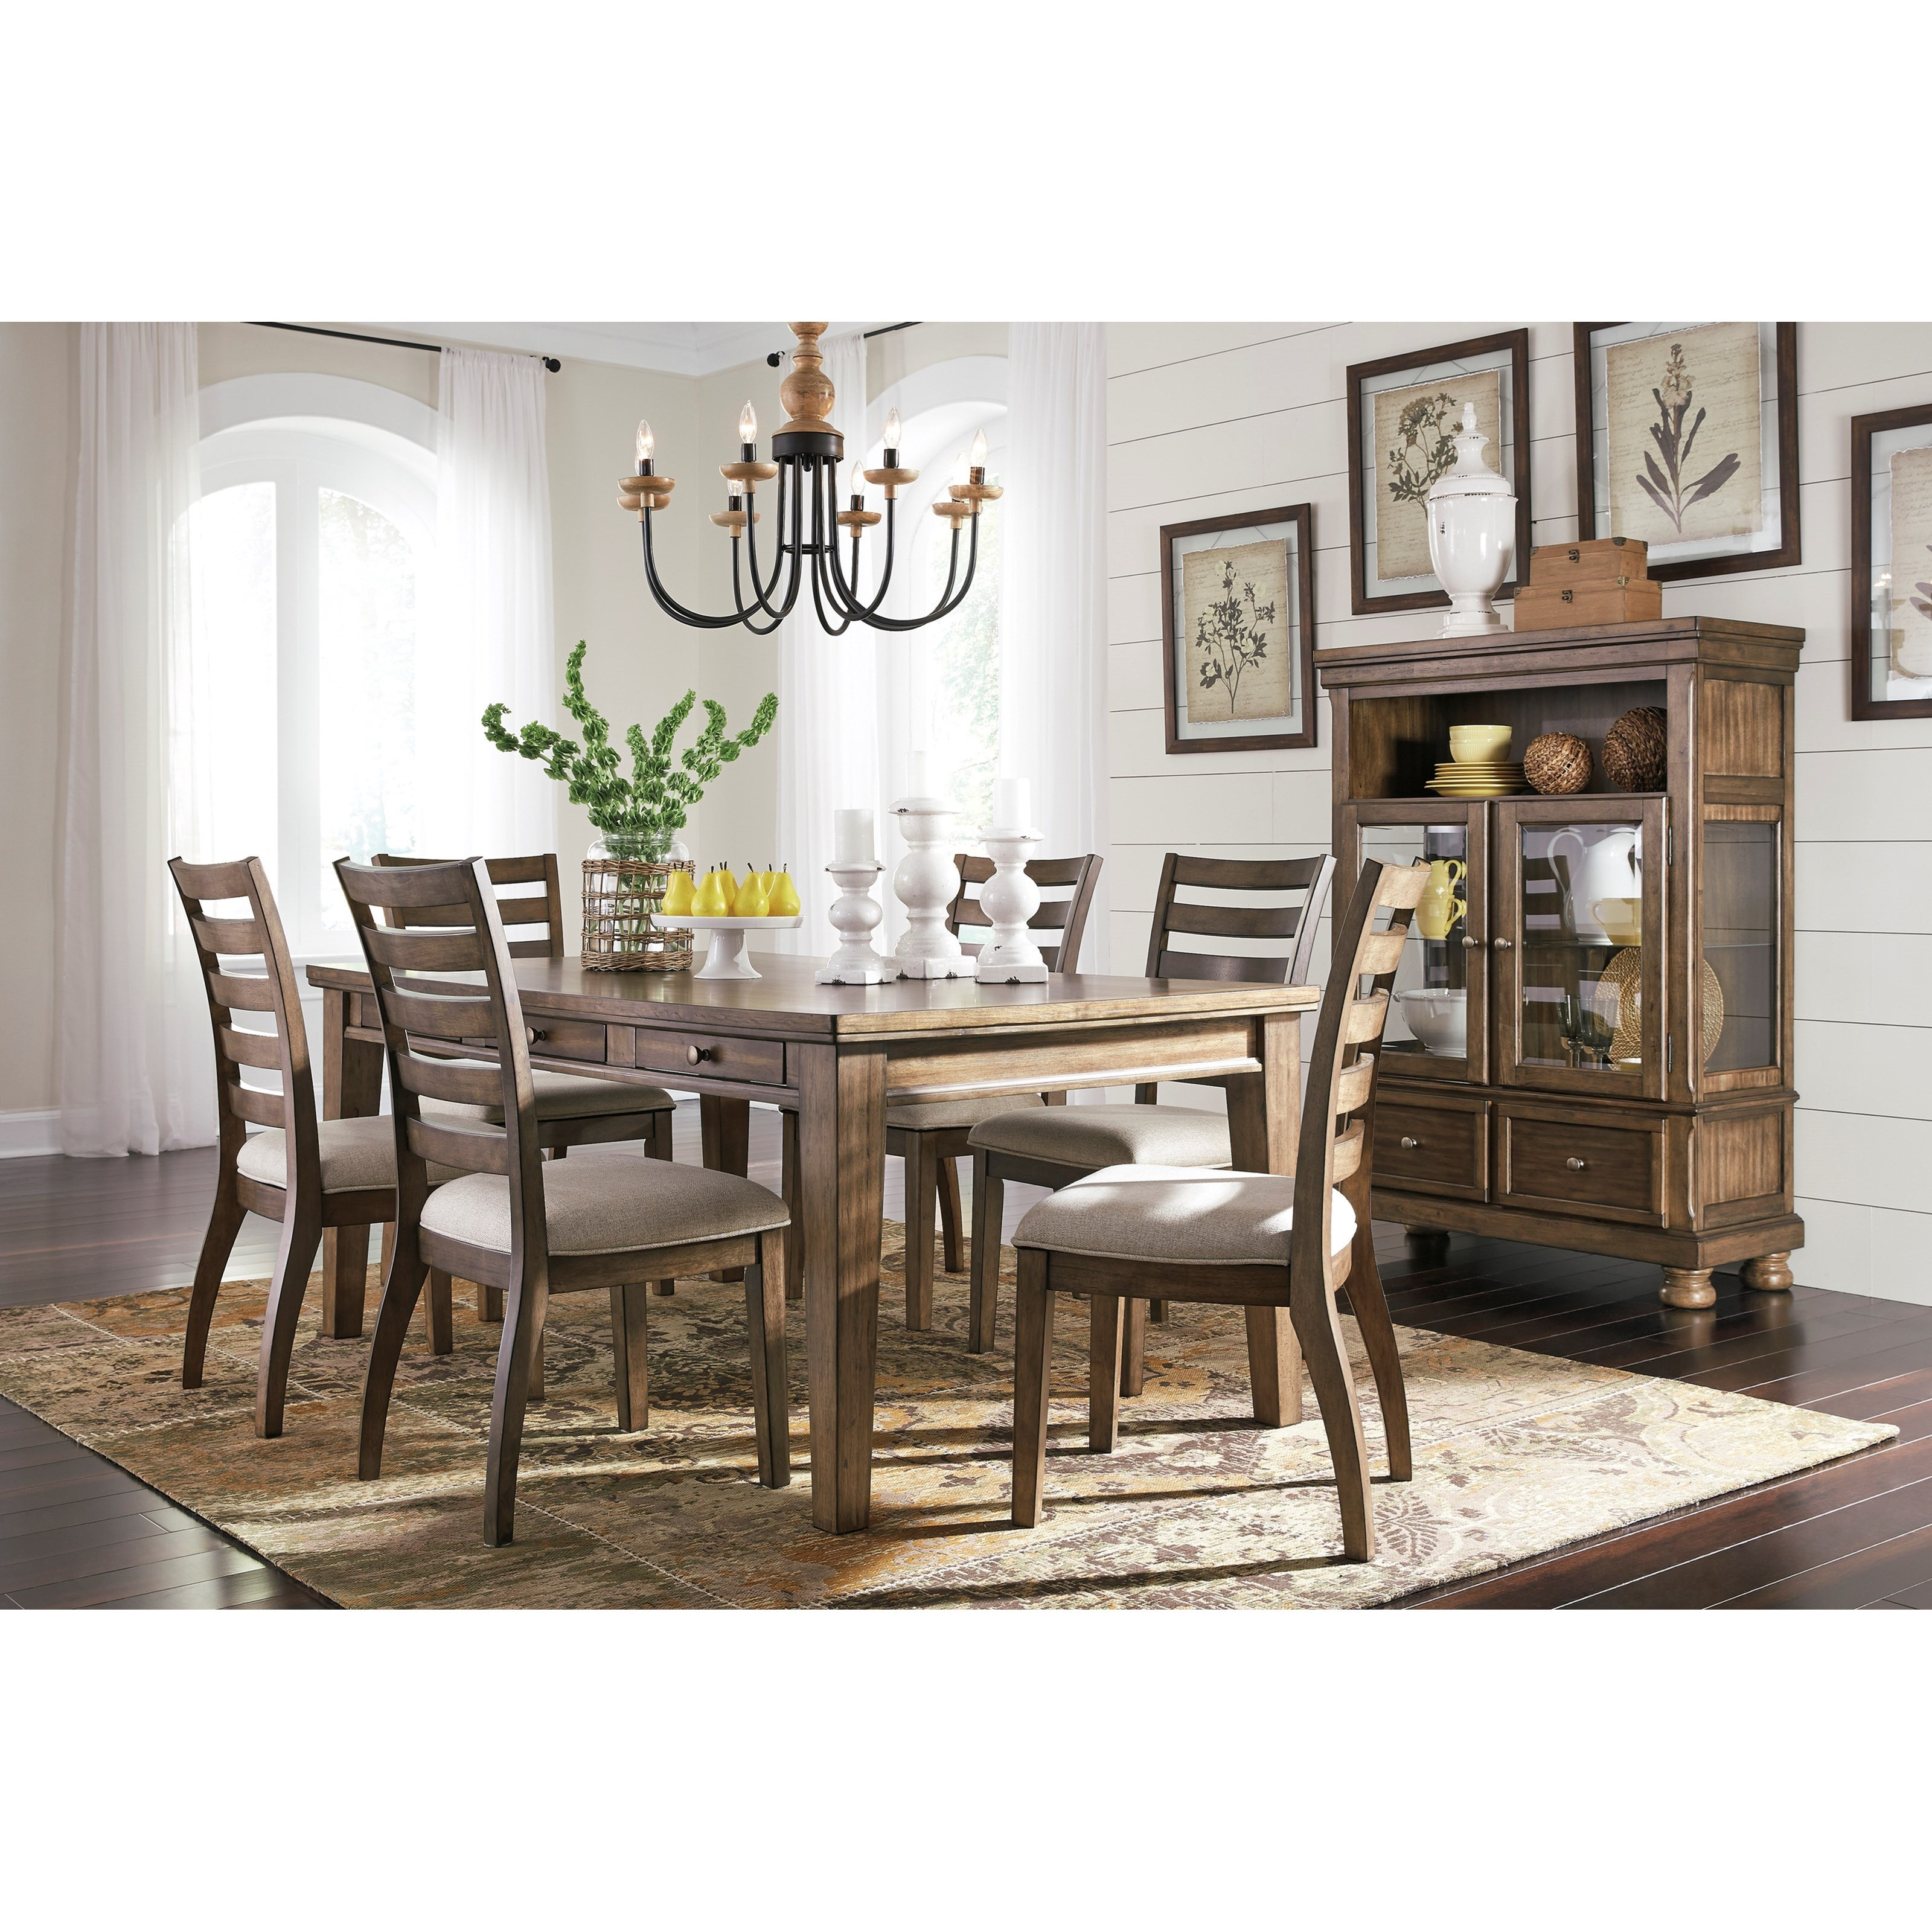 Flynnter Dining Room Group by Signature Design by Ashley at Lapeer Furniture & Mattress Center